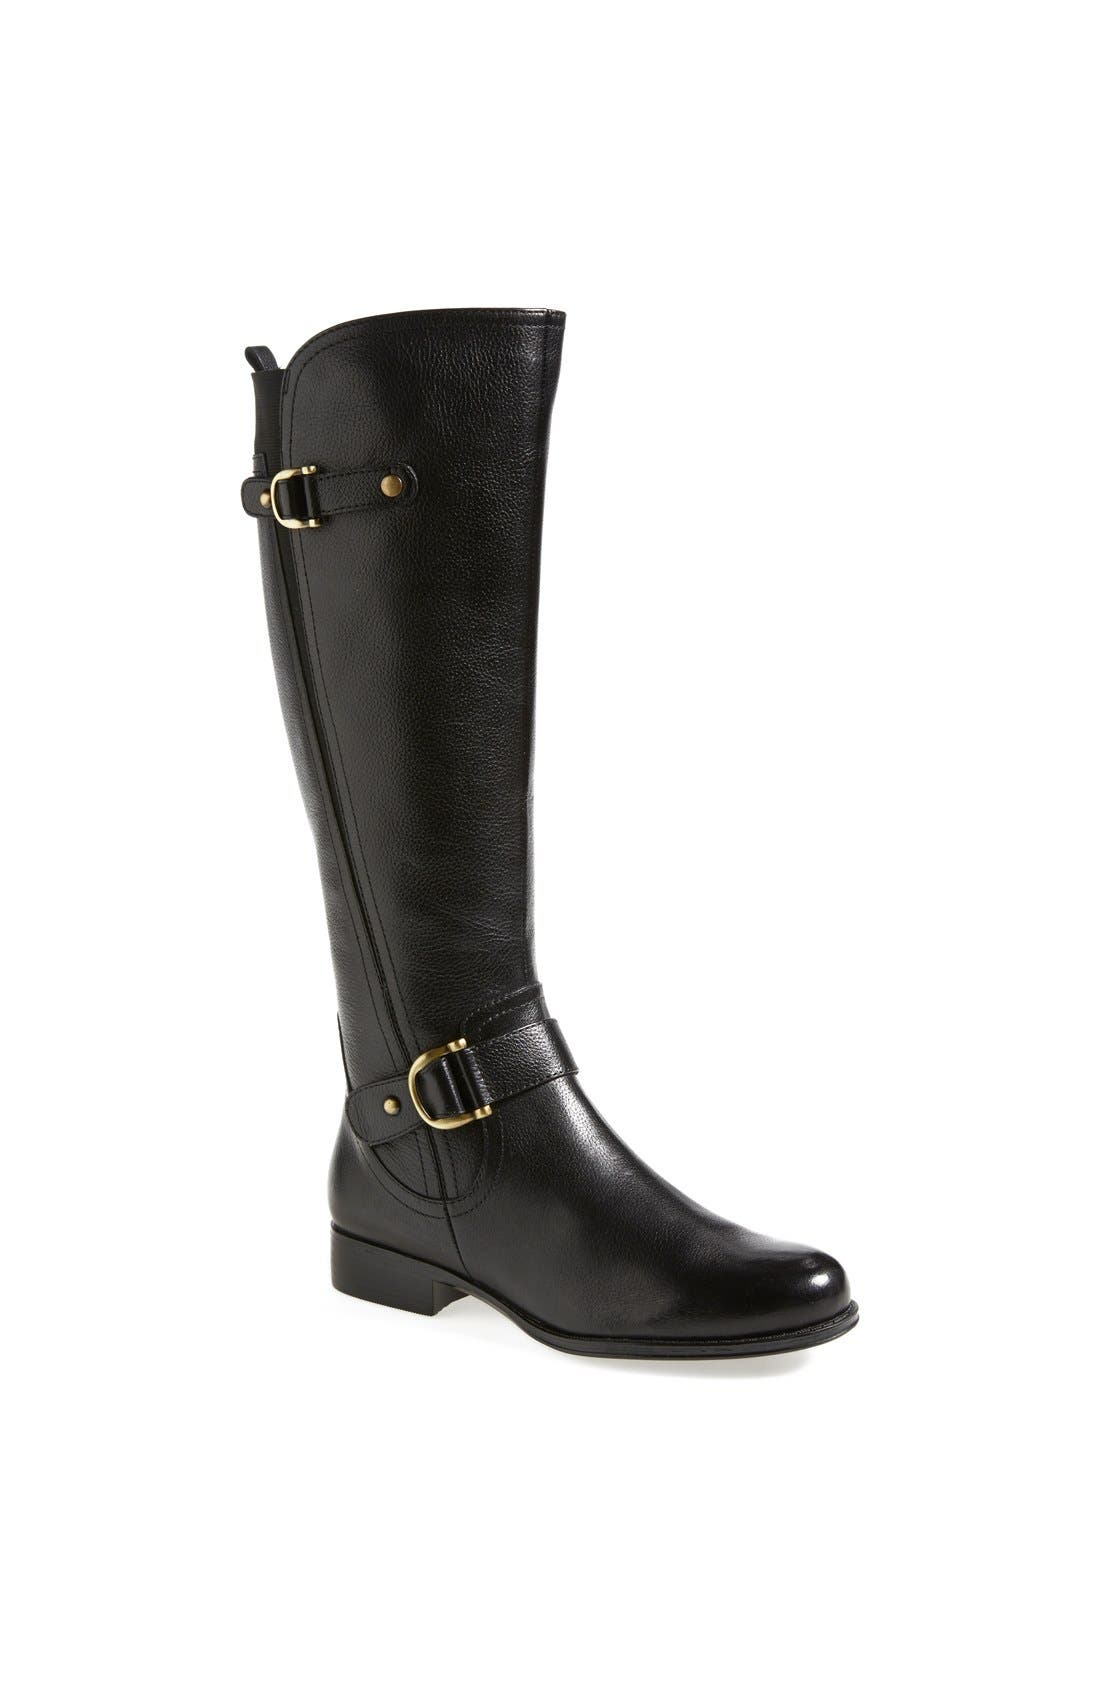 Main Image - Naturalizer 'Jersey' Leather Riding Boot (Wide Calf) (Women)